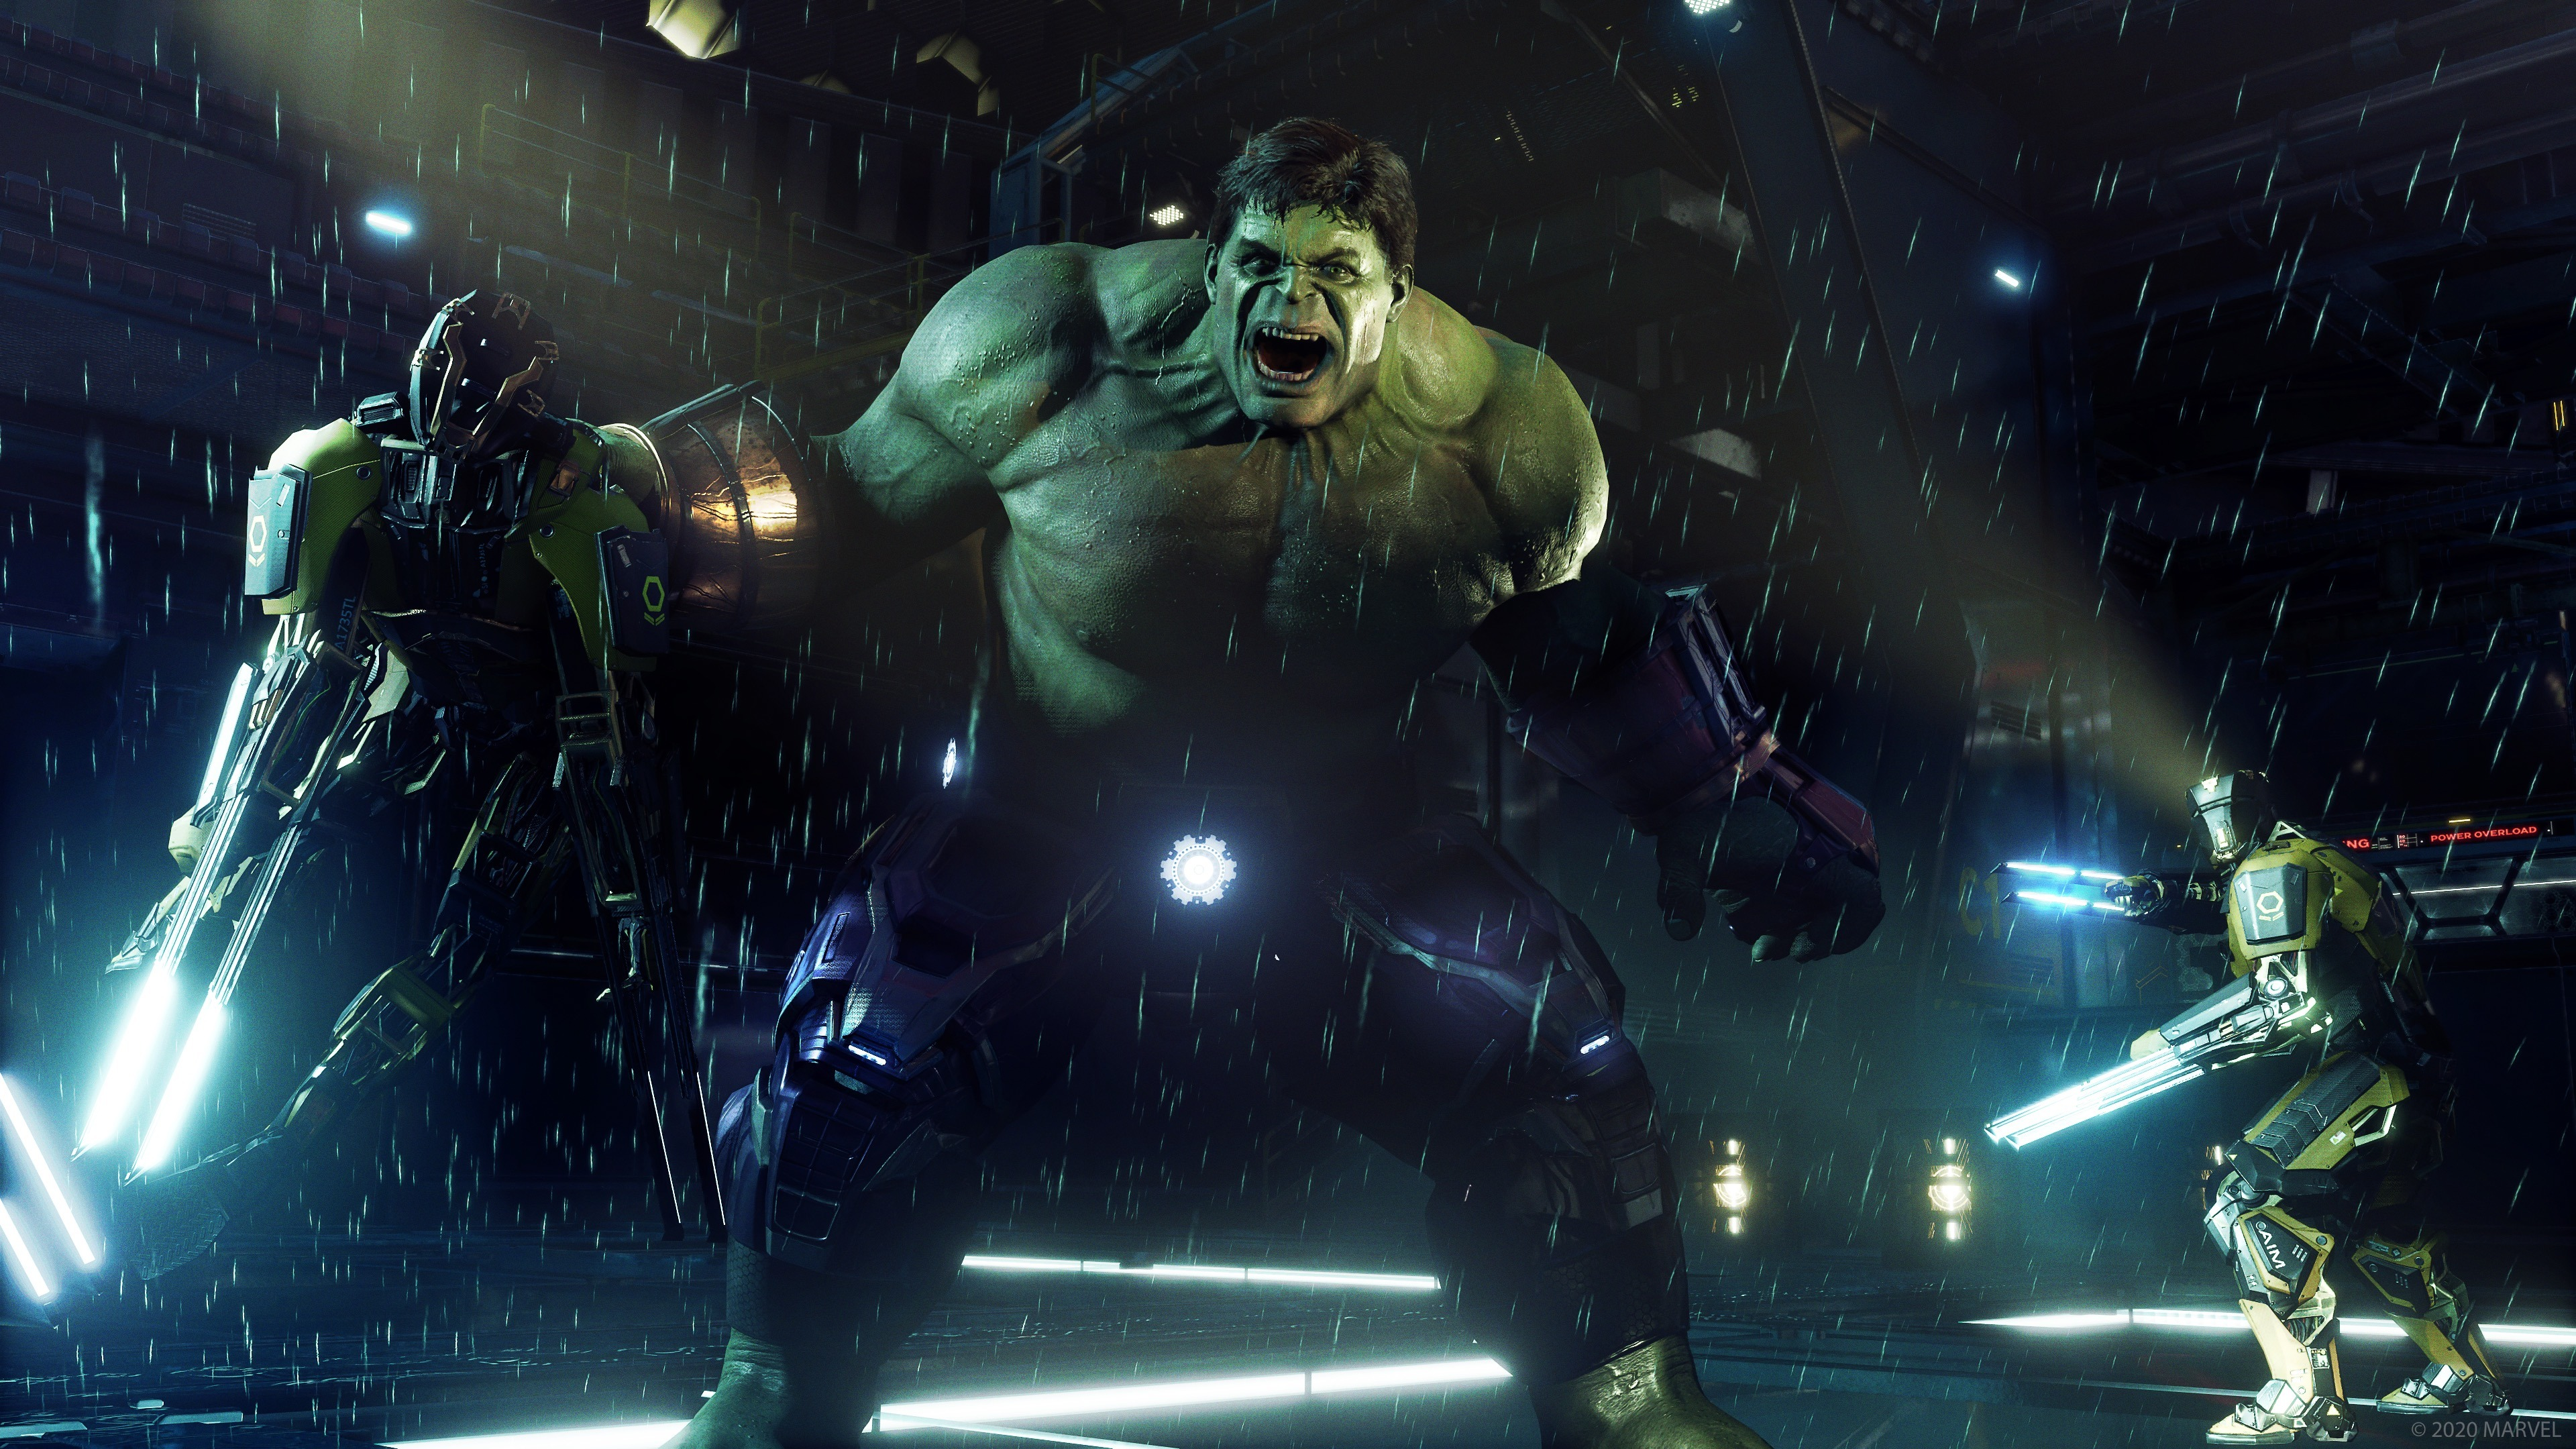 marvels avengers game hulk wallpaper 74162